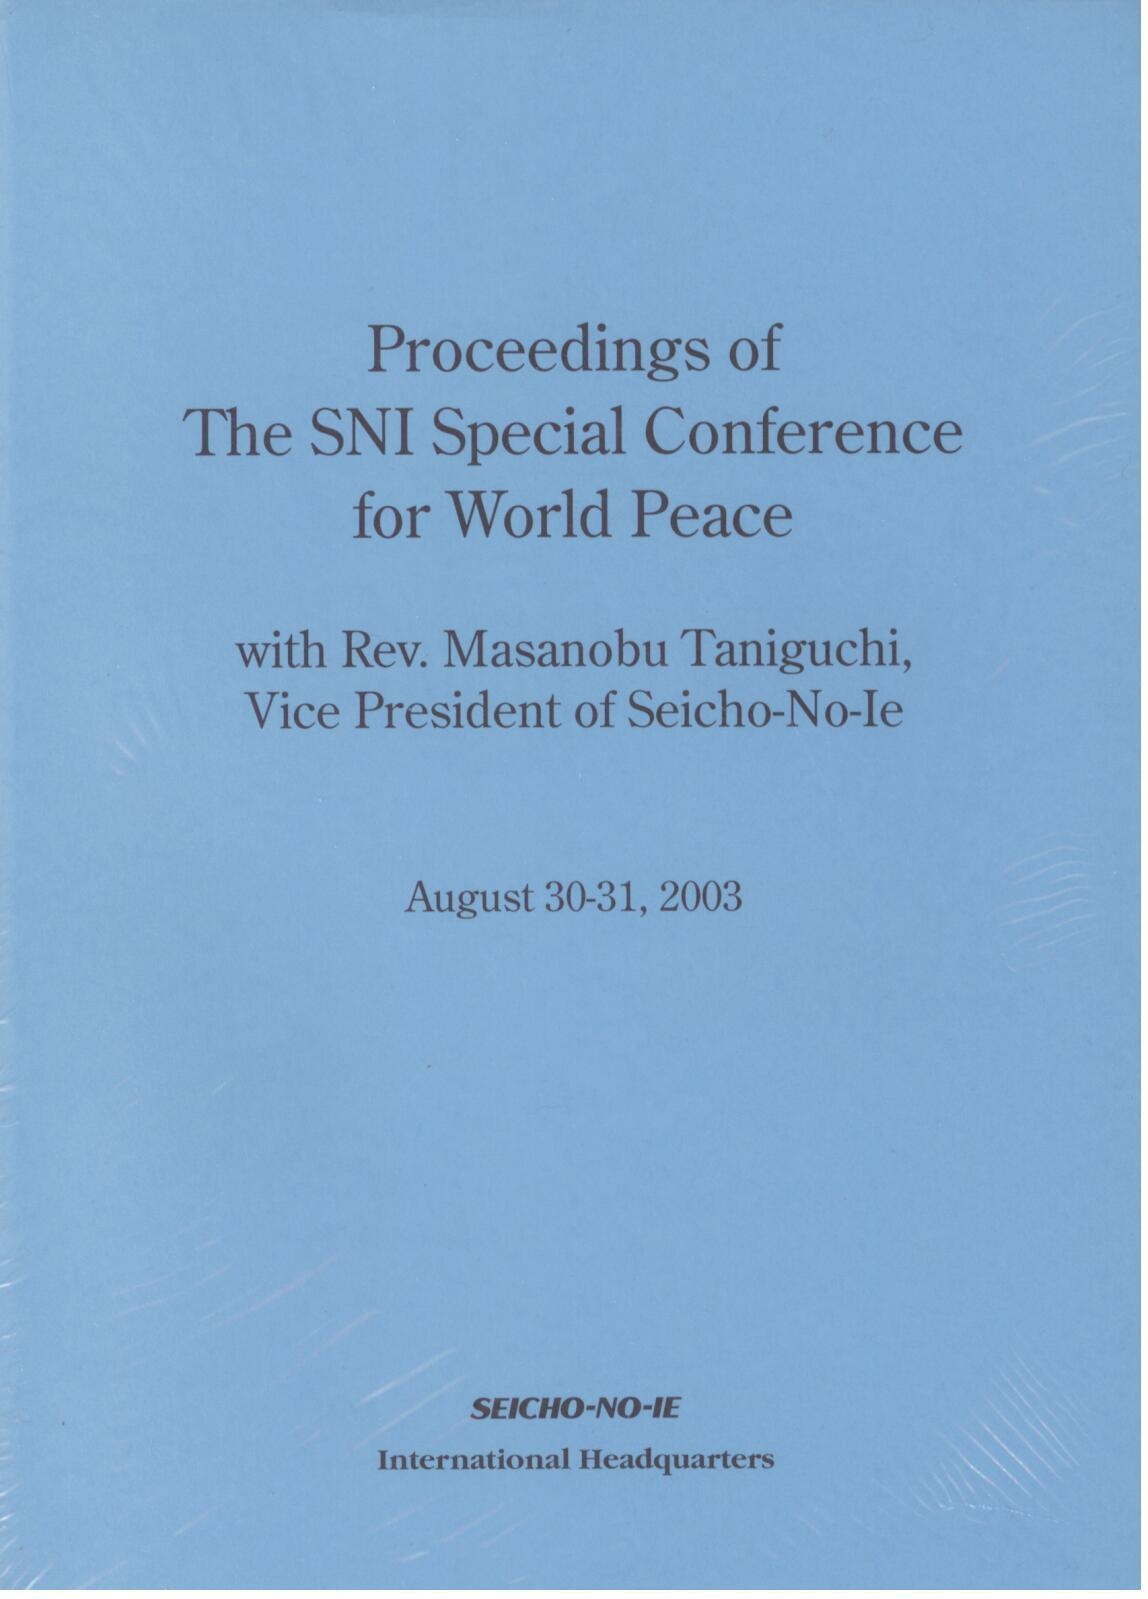 Proceedings 2003